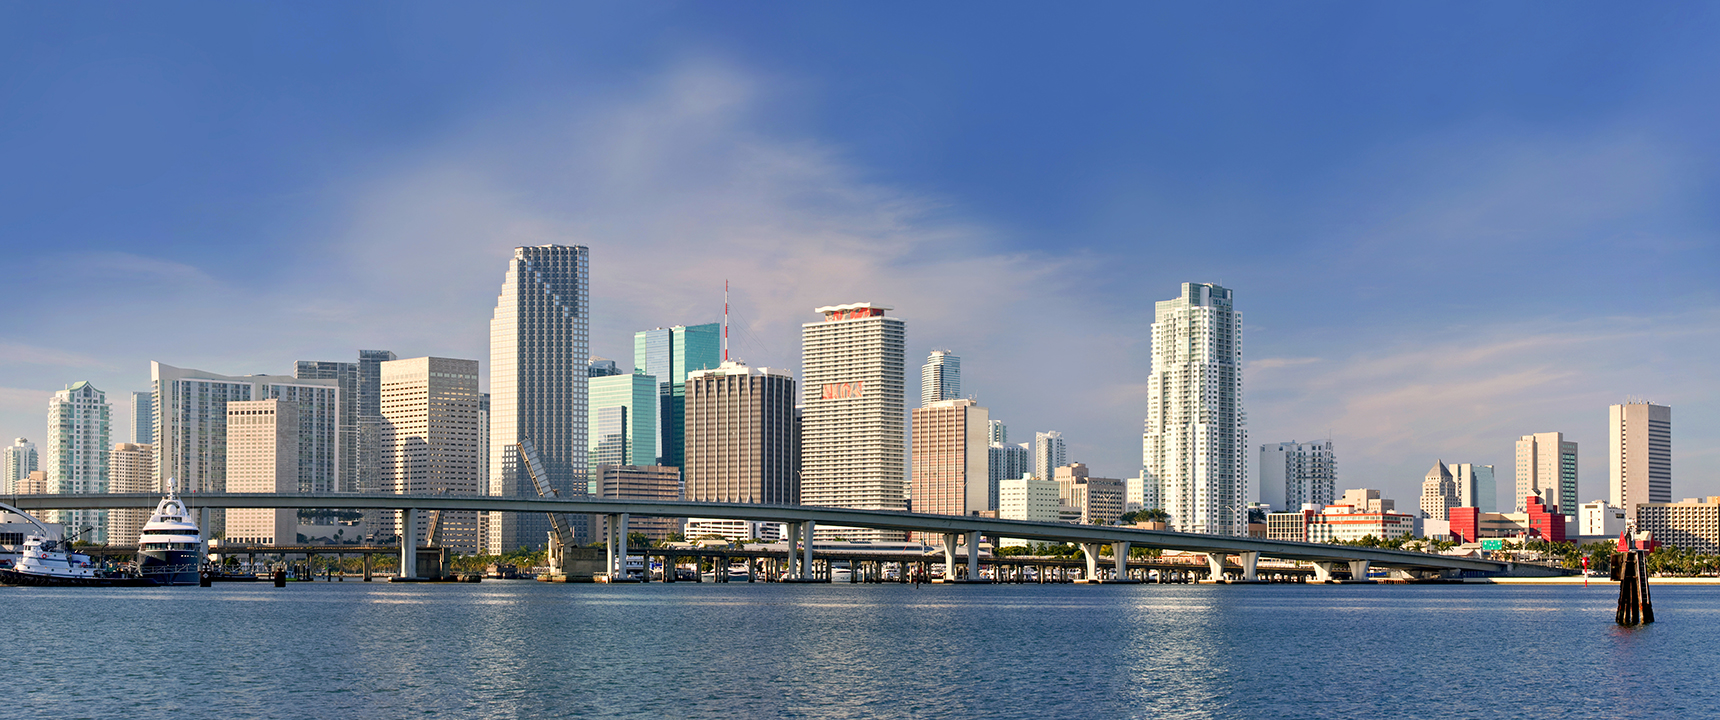 Photo of Miami, Florida where the South Florida Business Center is located outside of.